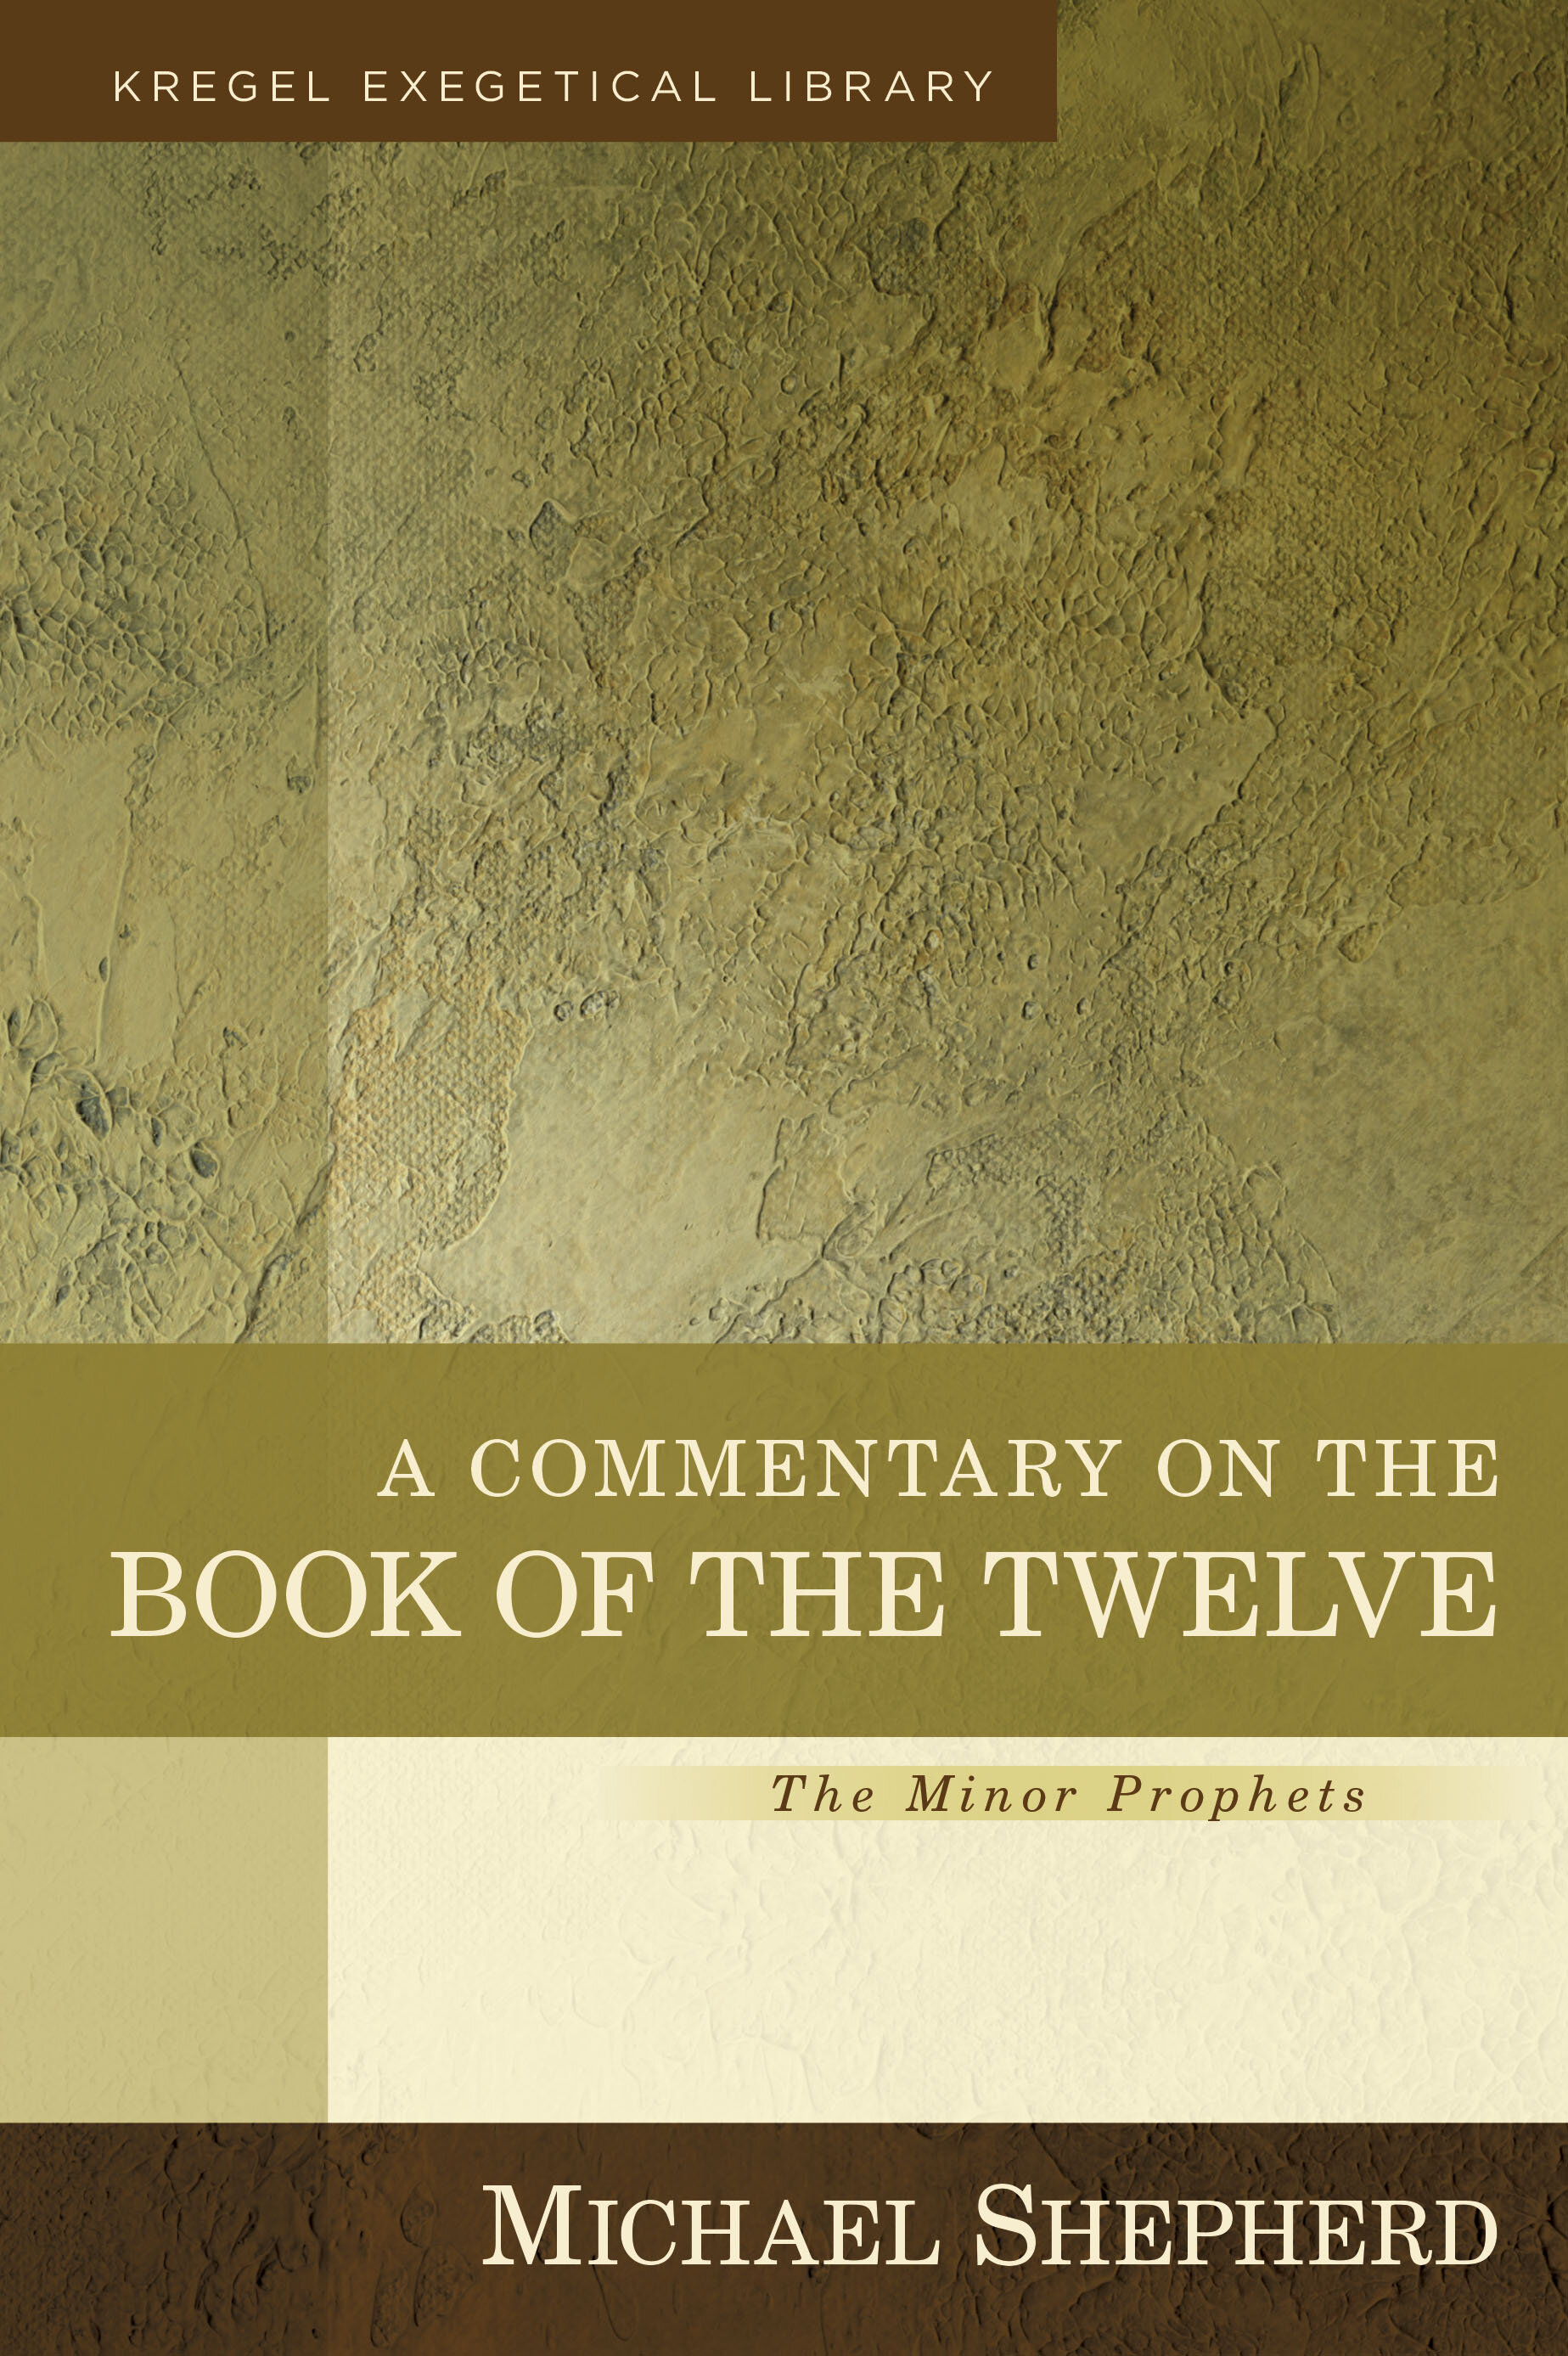 A Commentary on the Book of the Twelve: The Minor Prophets (Kregel Exegetical Library)